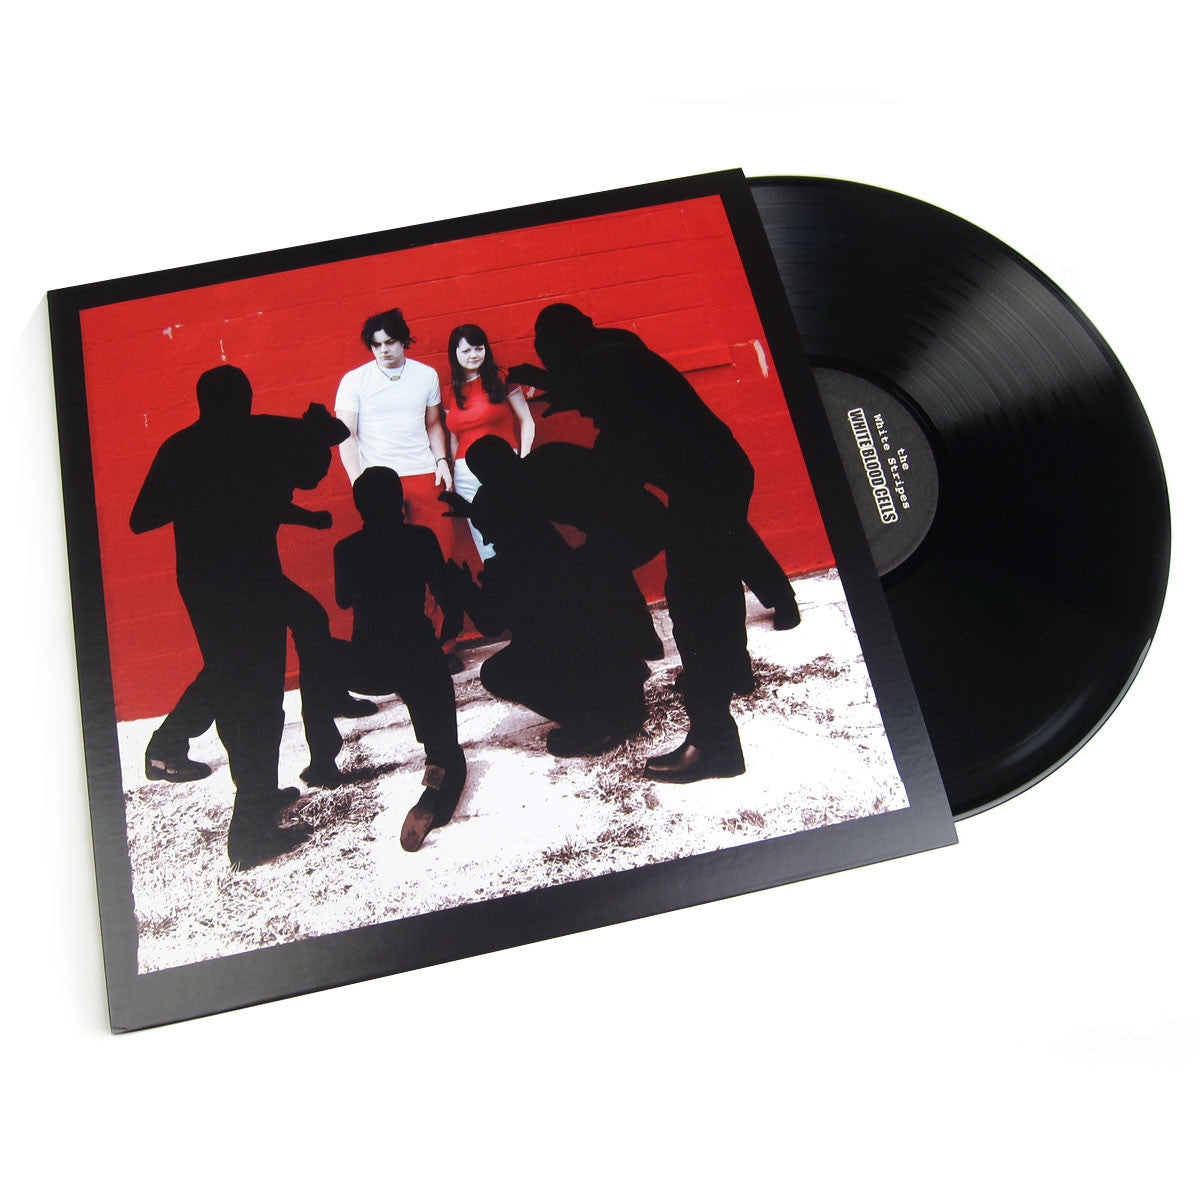 "The White Stripes: Vinyl LP Album + 7"" Pack (De Stijl, White Blood Cells, Elephant)"